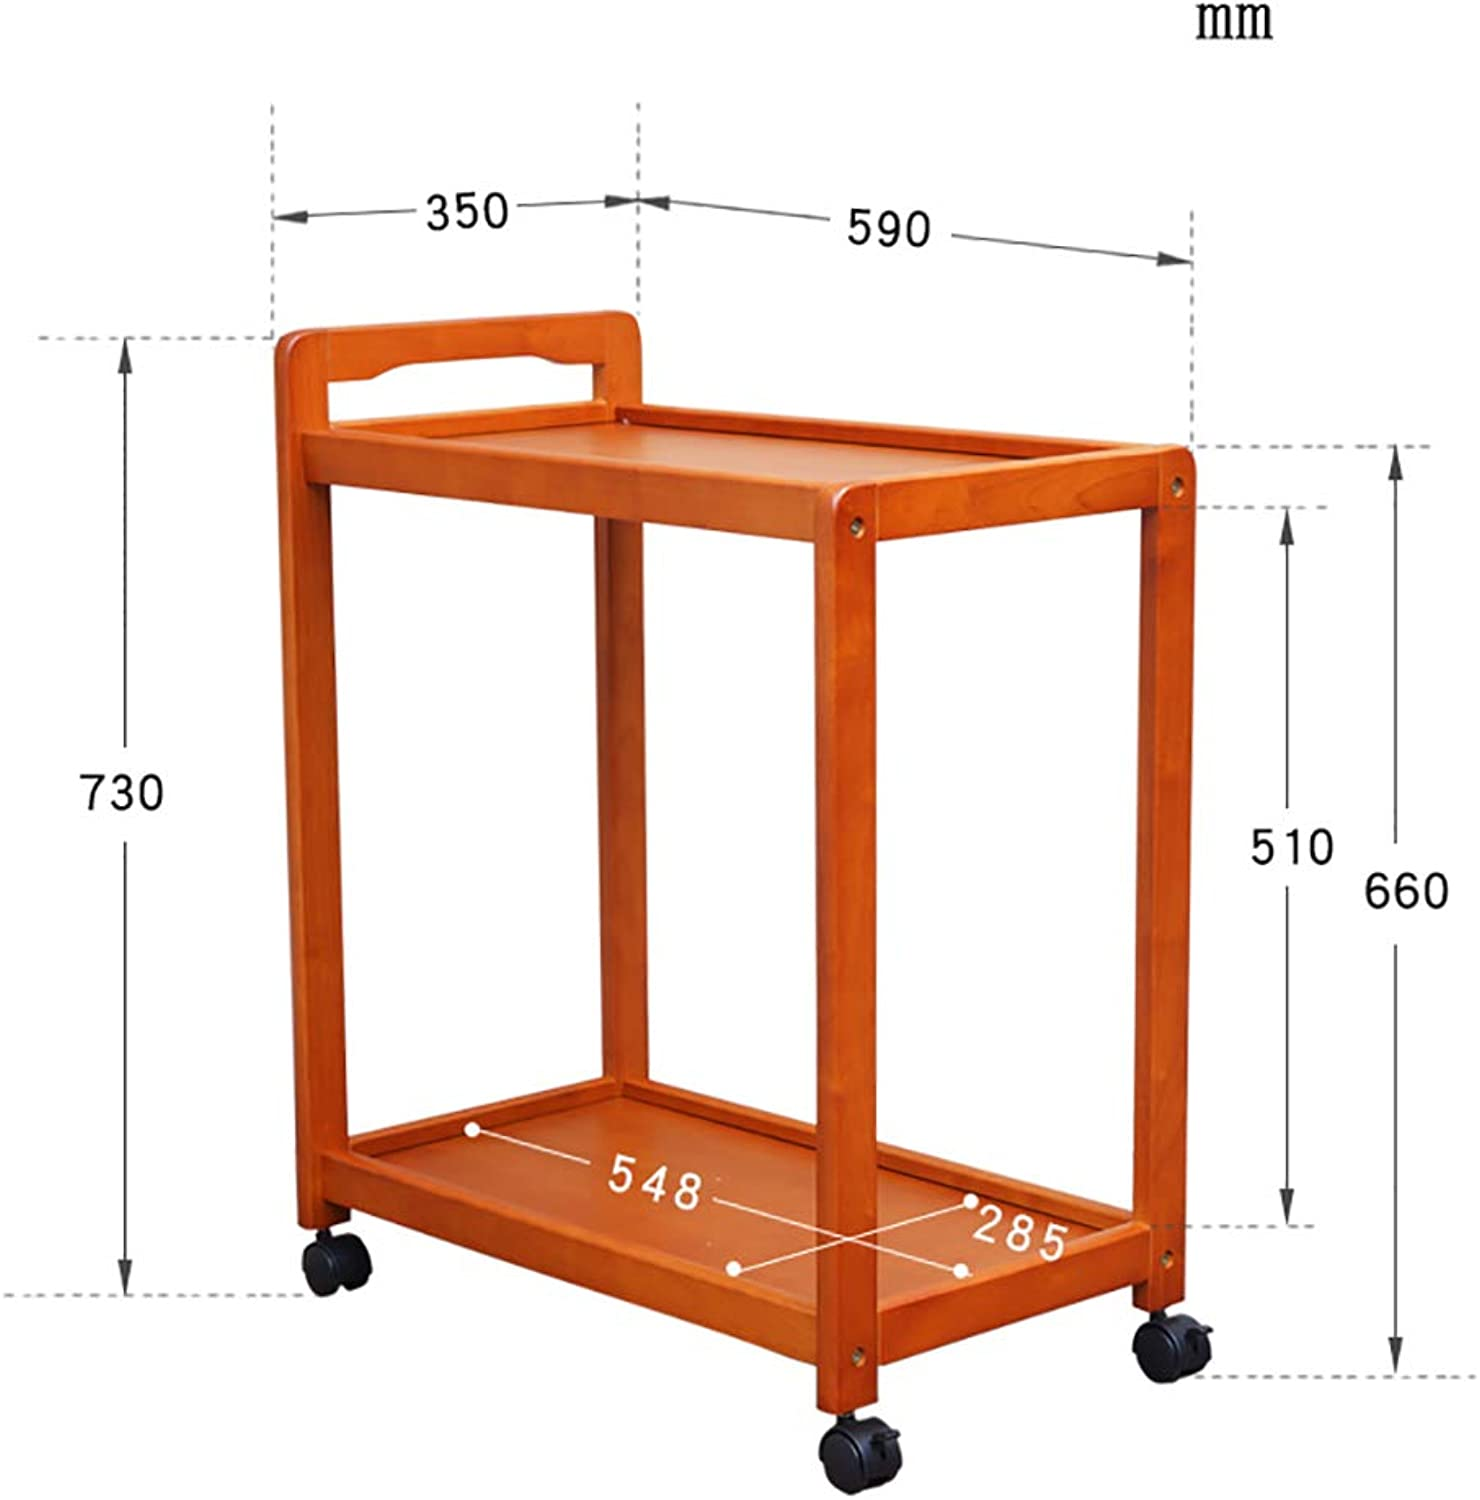 Kitchen Serving Trolley Cart Kitchen Storage Trolley on Wheels Restaurant Storage Finishing Shelves Bamboo (color   D)